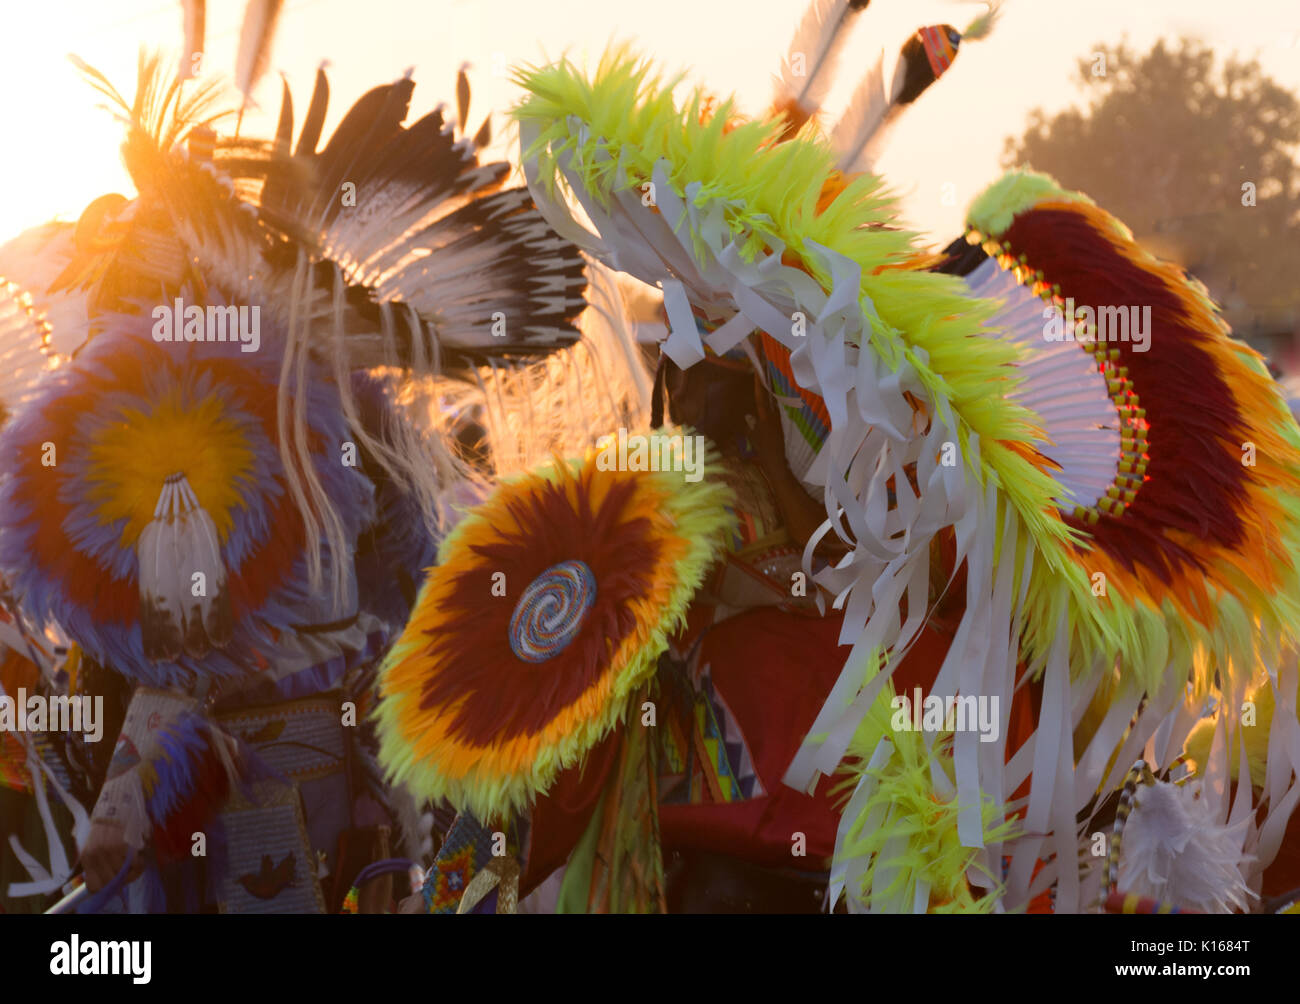 Colorful headdresses worn at a Powwow. Feathers, ribbons and beads in red, yellow, orange, blue and white are photographed with shallow depth of field. - Stock Image